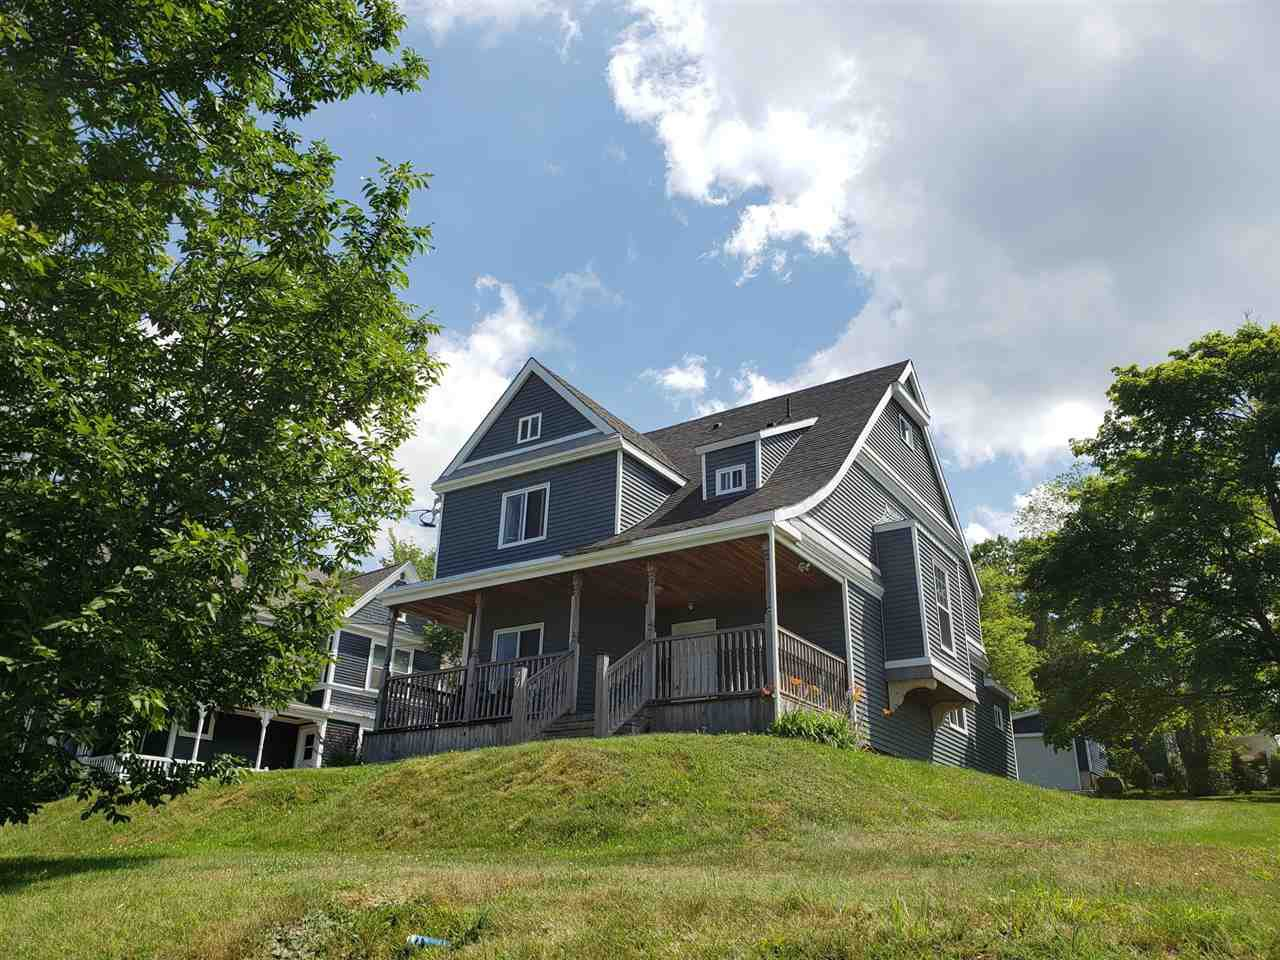 Photo 4: Photos: 29 Prospect Street in Wolfville: 404-Kings County Multi-Family for sale (Annapolis Valley)  : MLS®# 202014423